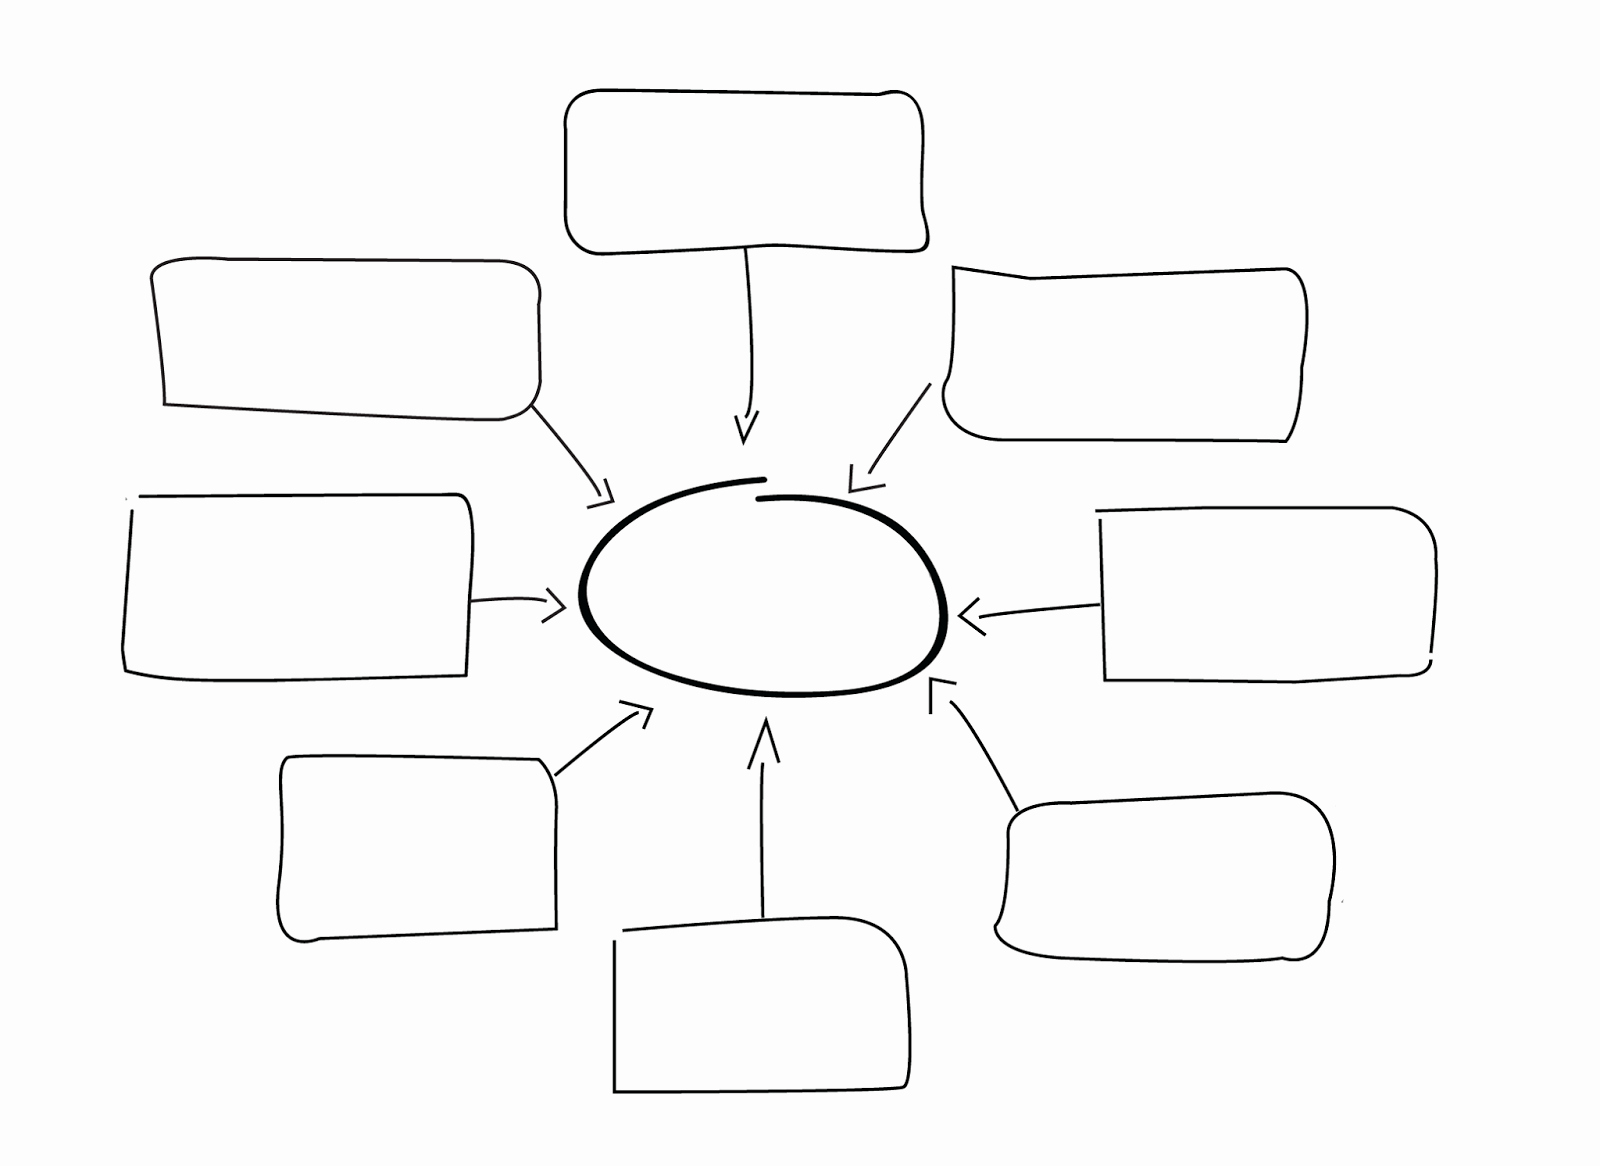 Blank Mind Map Diagram to Pin On Pinterest